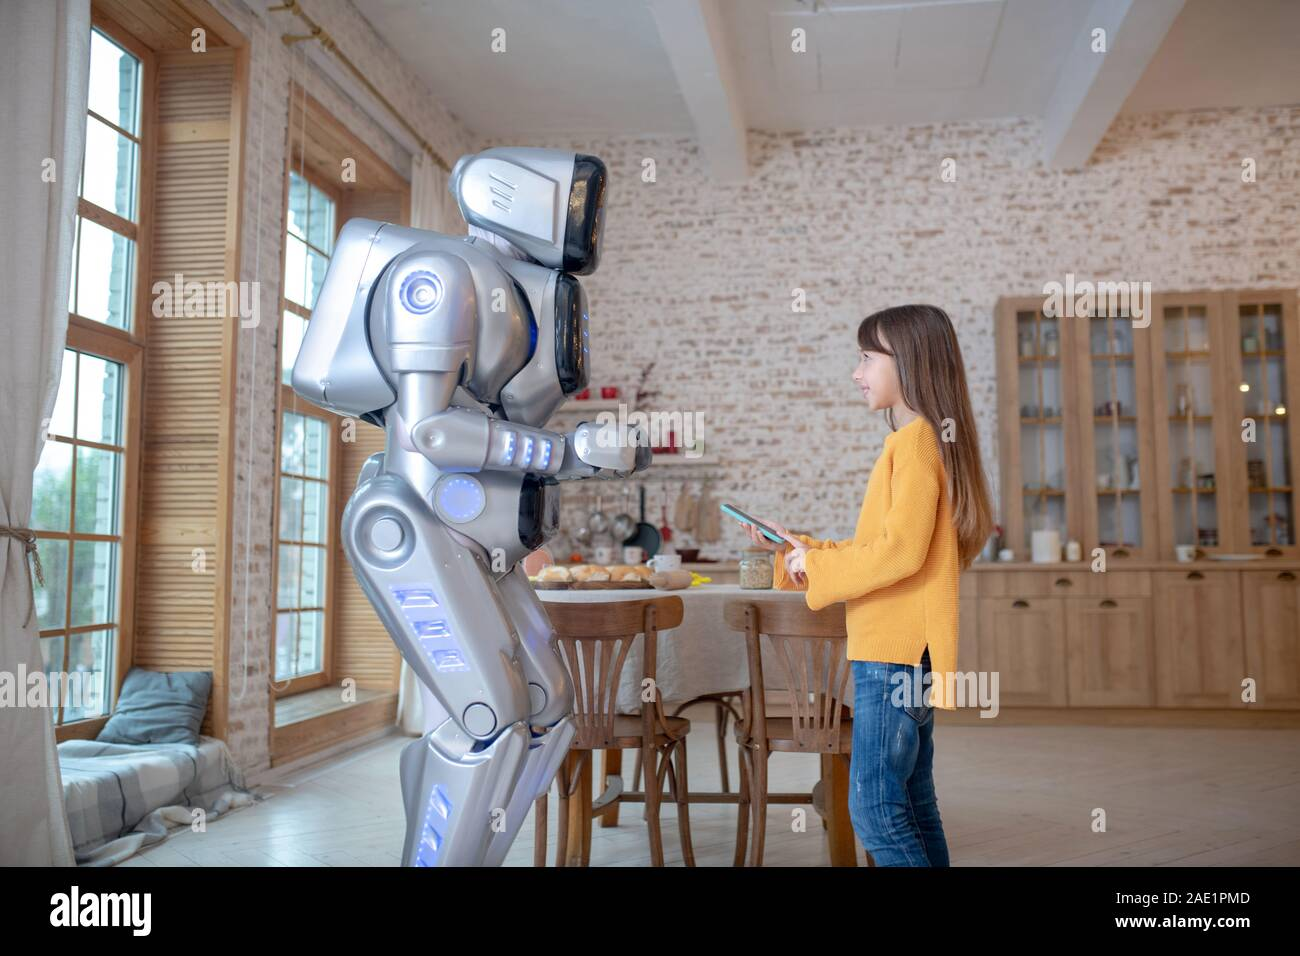 Robot And A Cute Girl Talking In The Kitchen Stock Photo Alamy